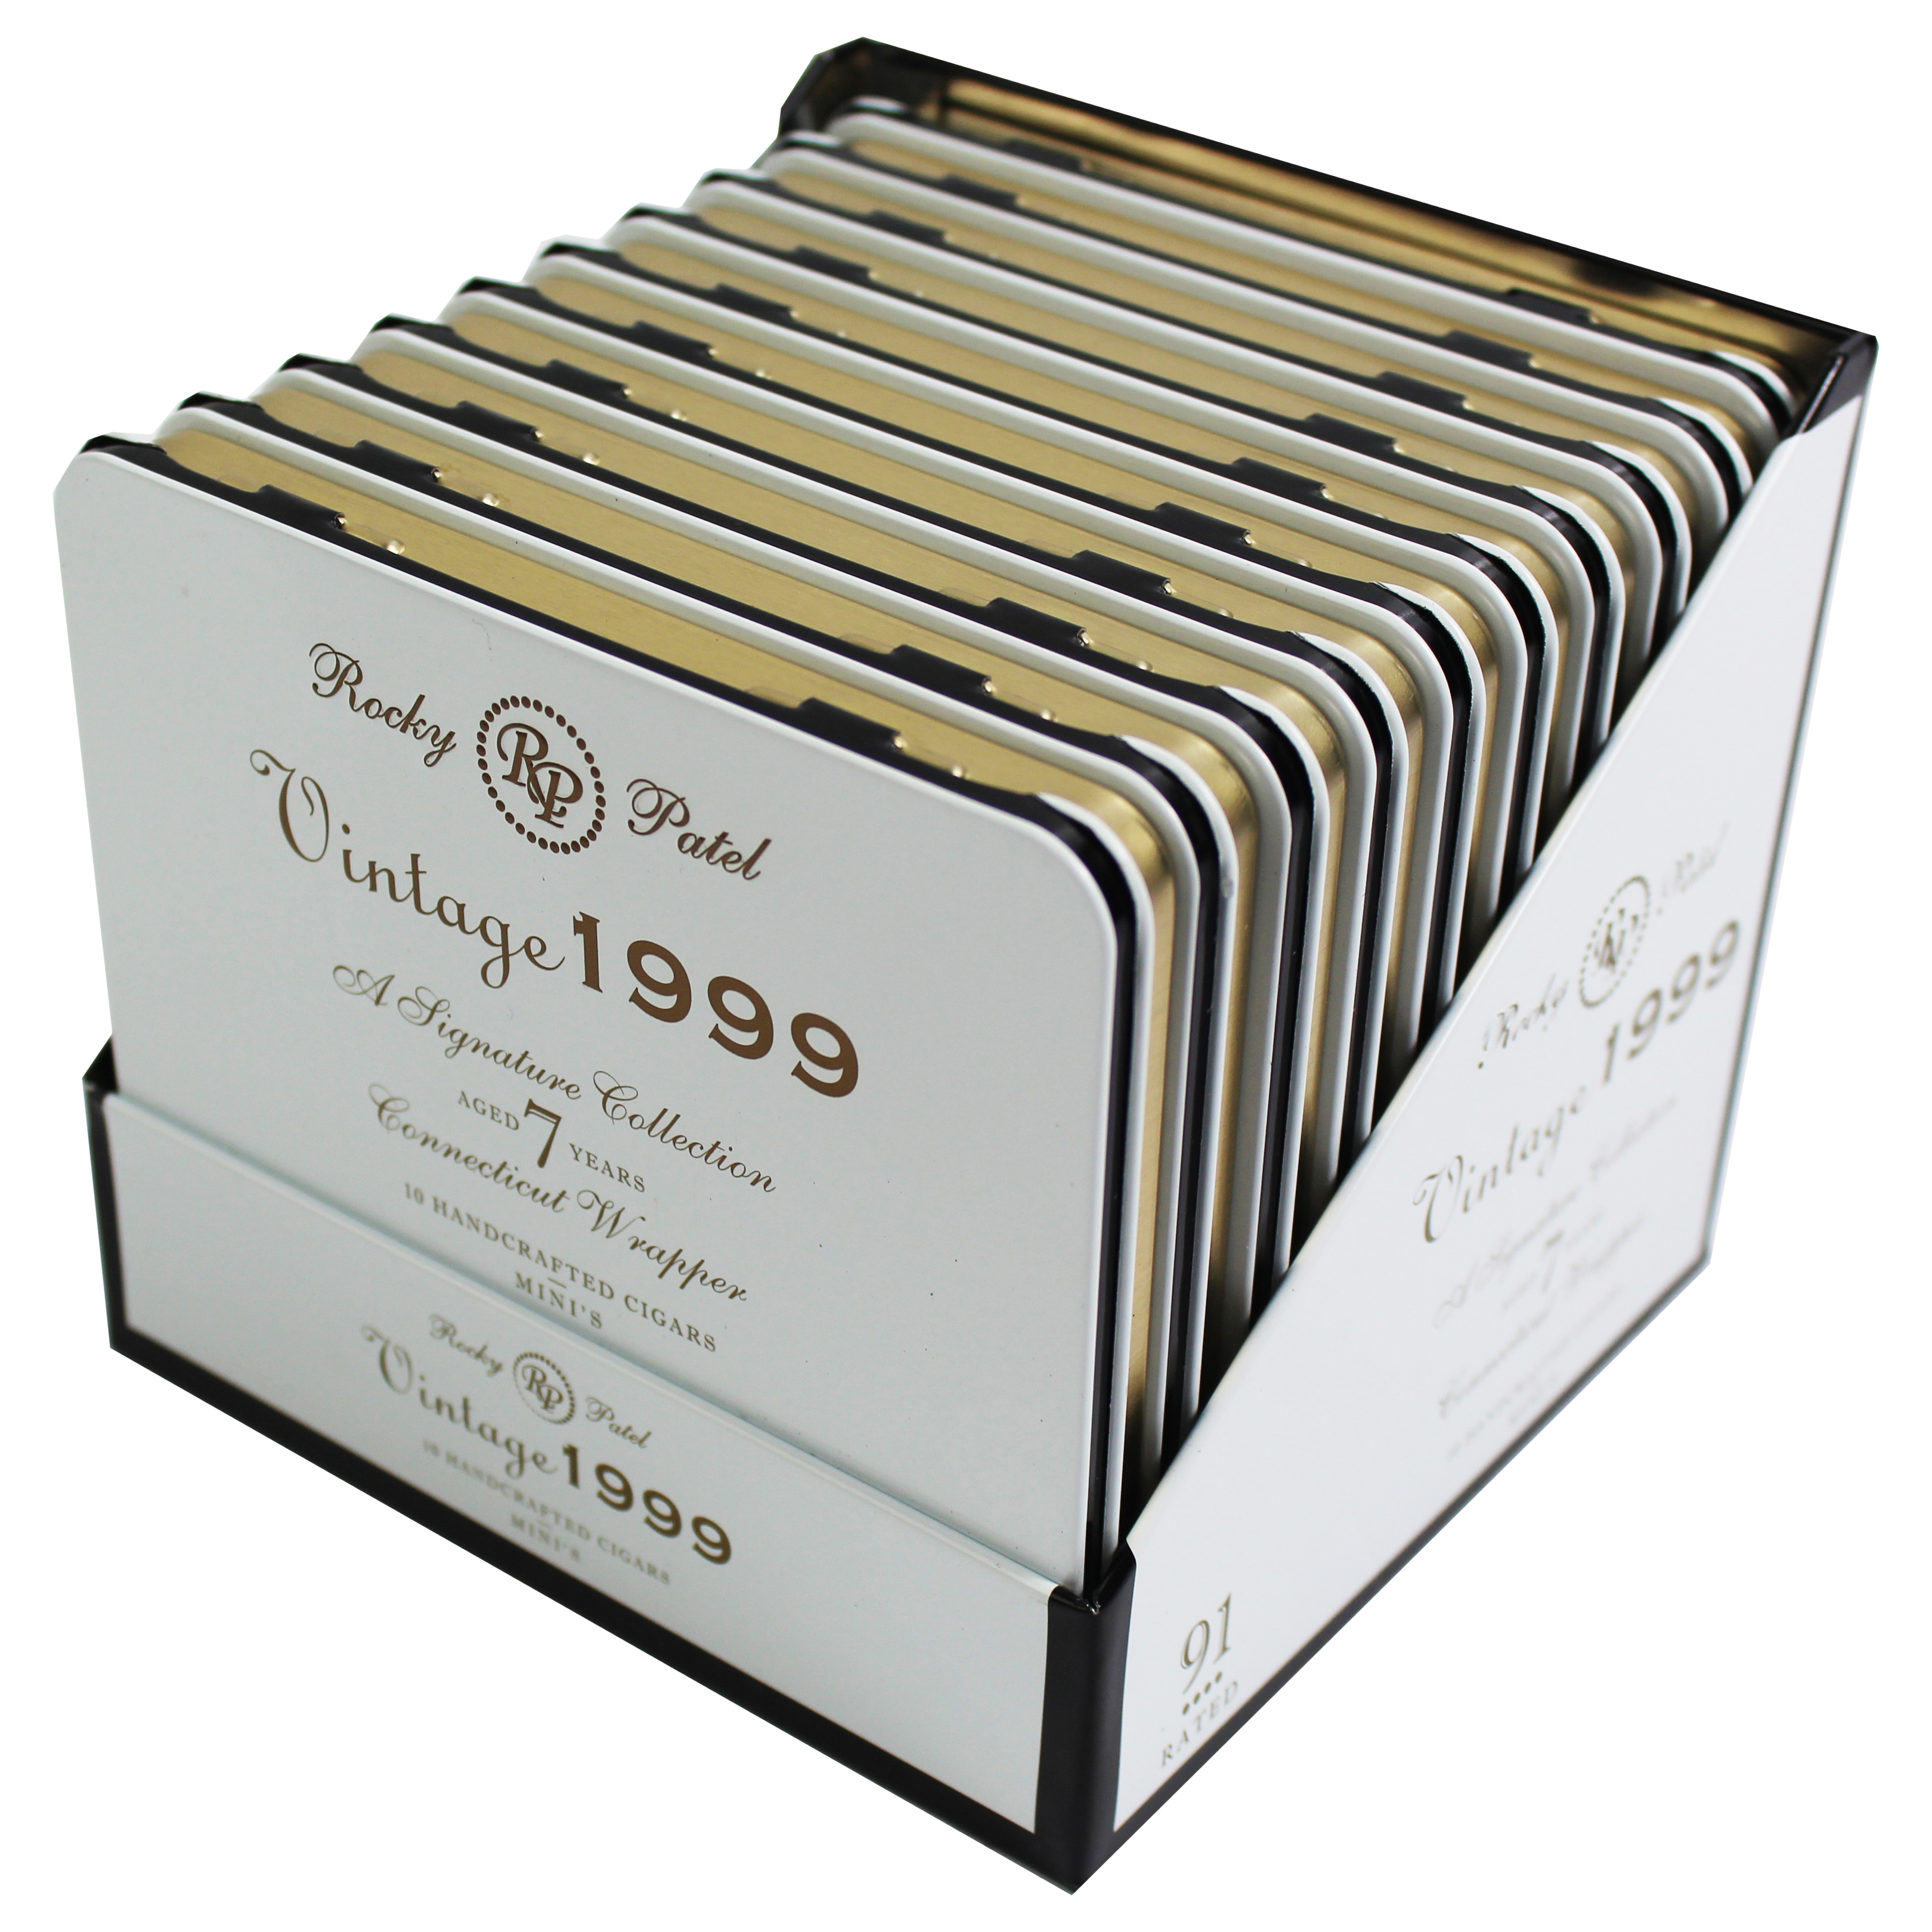 Cigar News: Rocky Patel Vintage 1999 Minis Coming in April